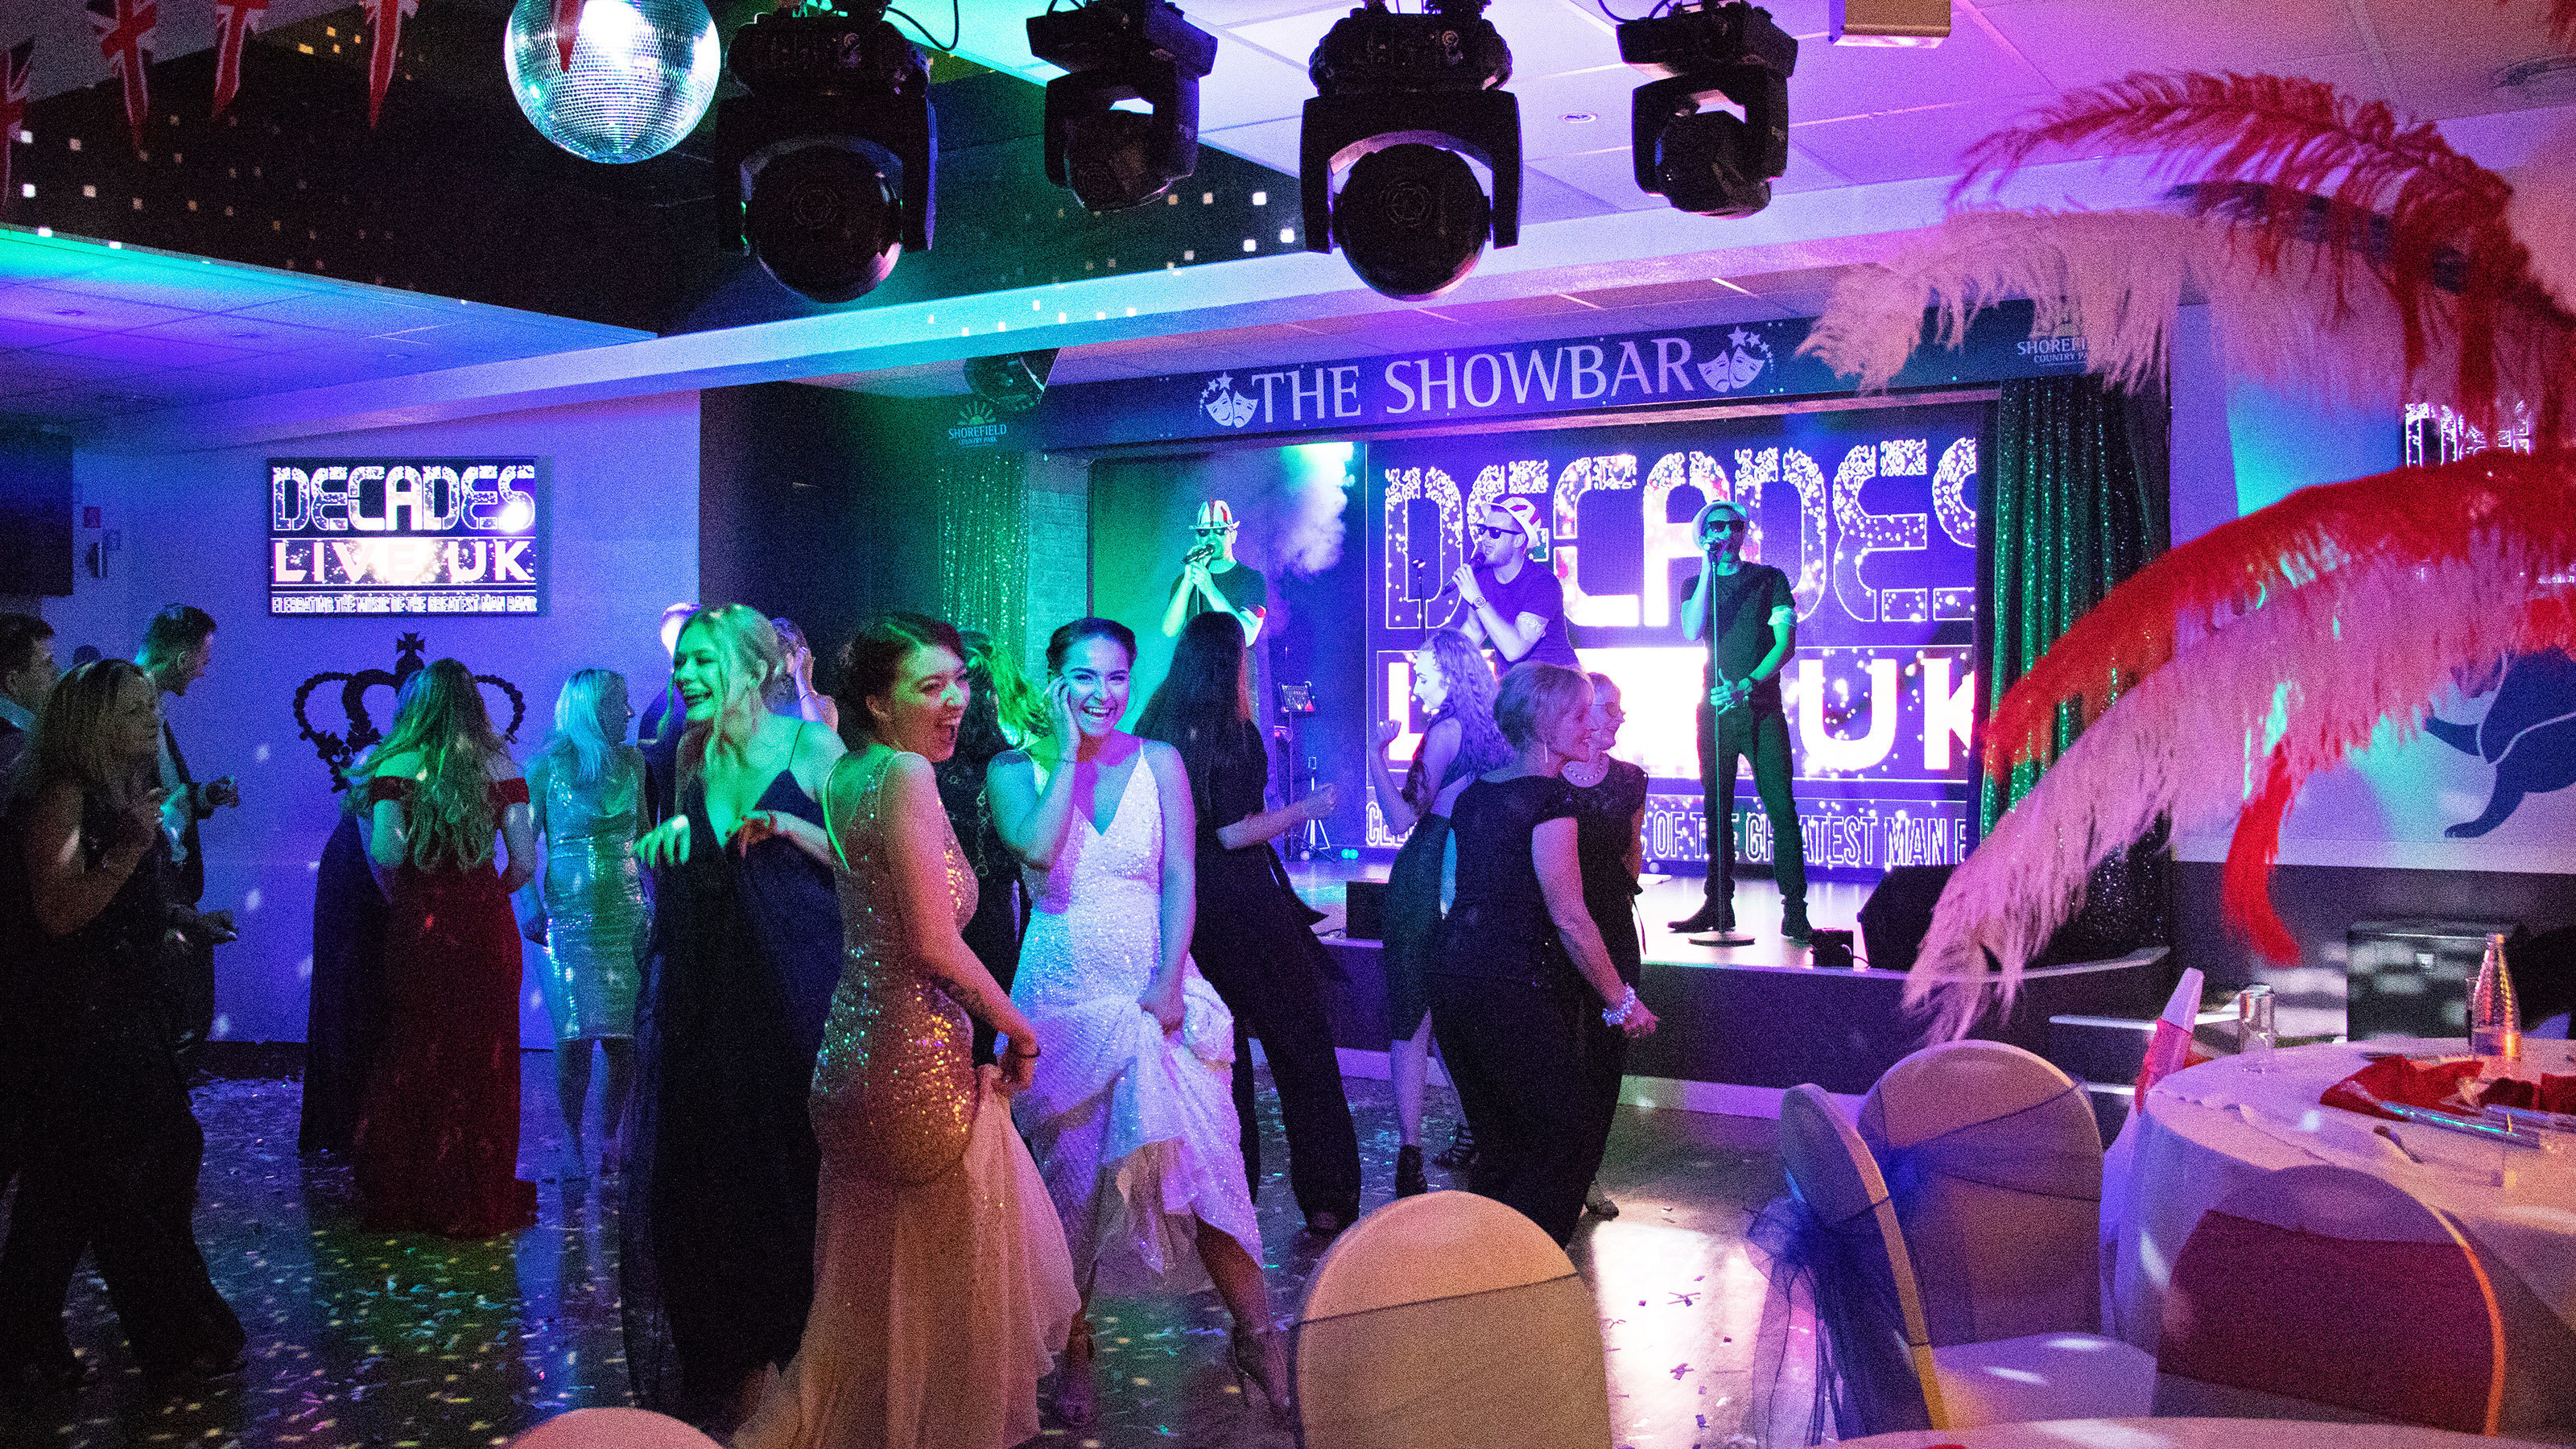 Staff-let-their-hair-down-on-the-dancefloor-to-Decades-Live